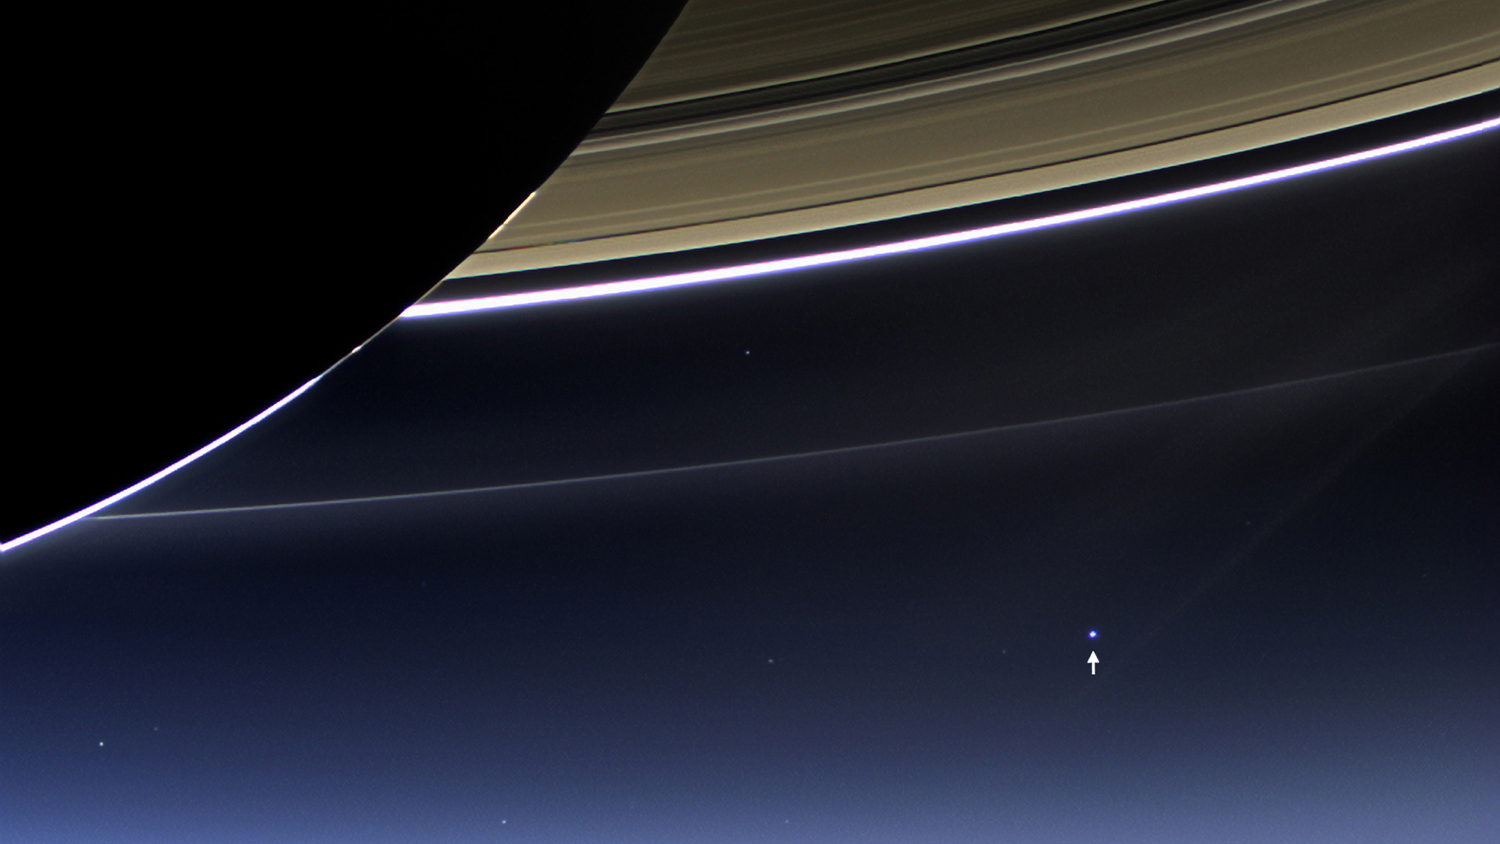 earth-moon-photo-saturn-2013-annotated.j